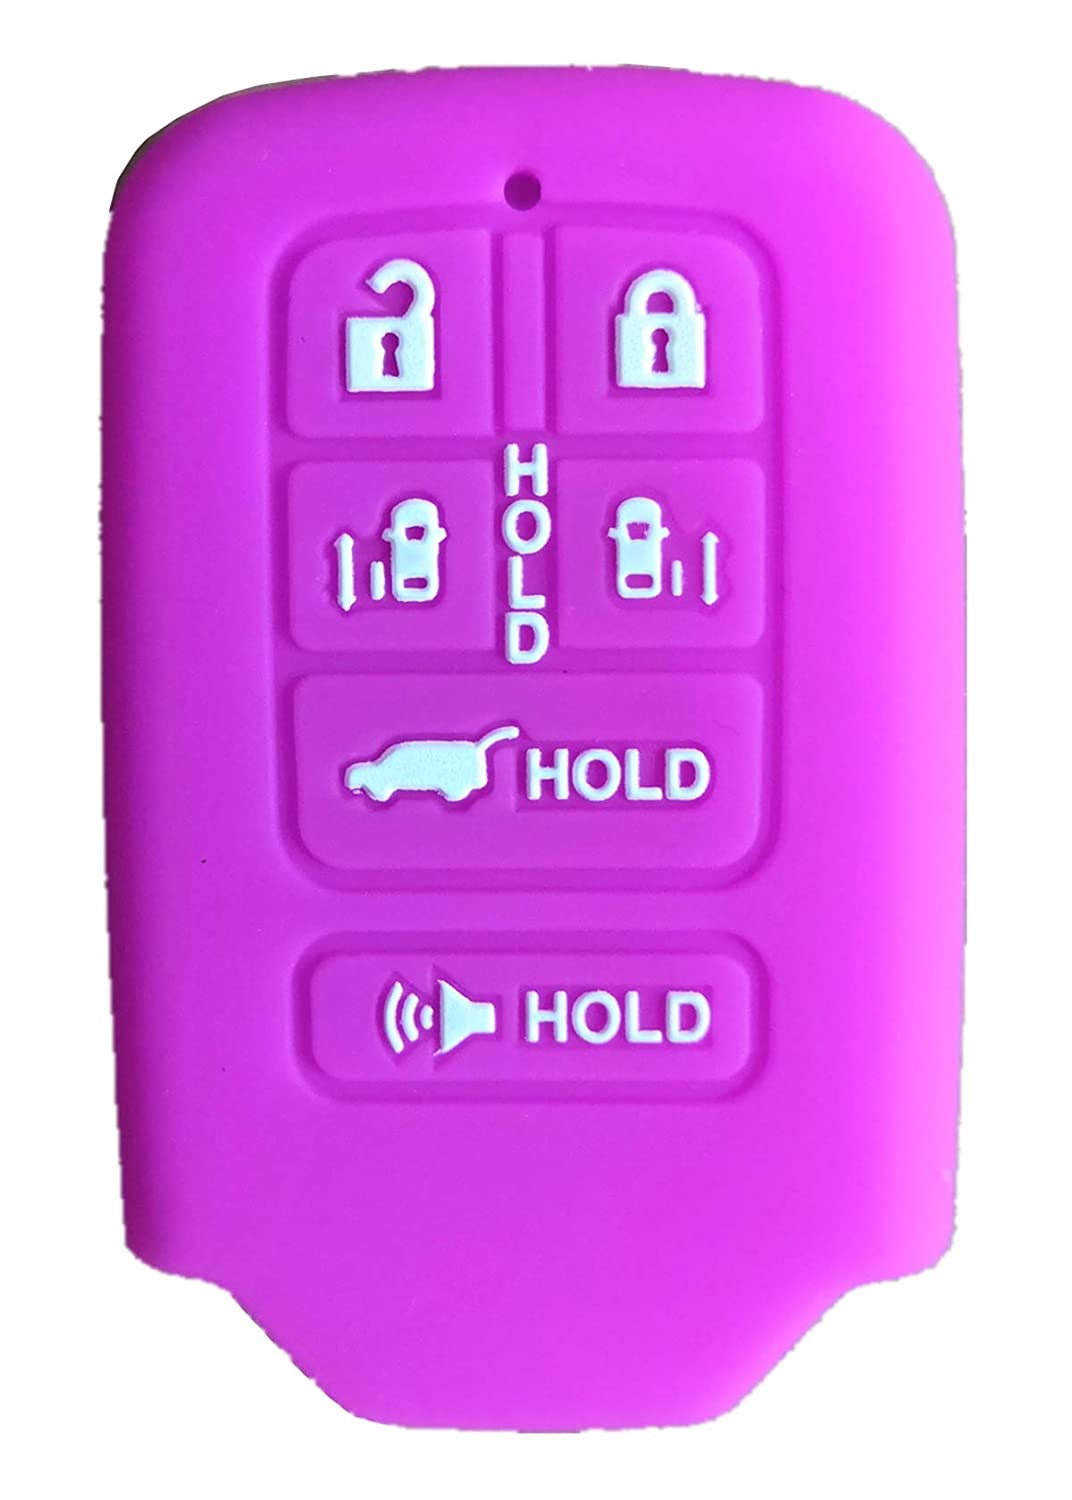 KAWIHEN Silicone Key Fob Cover Protector Smart Remote Keyless Entry Case Holder For 2014 2015 2016 2017 Honda Odyssey 6 button KR5V1X A2C83158300